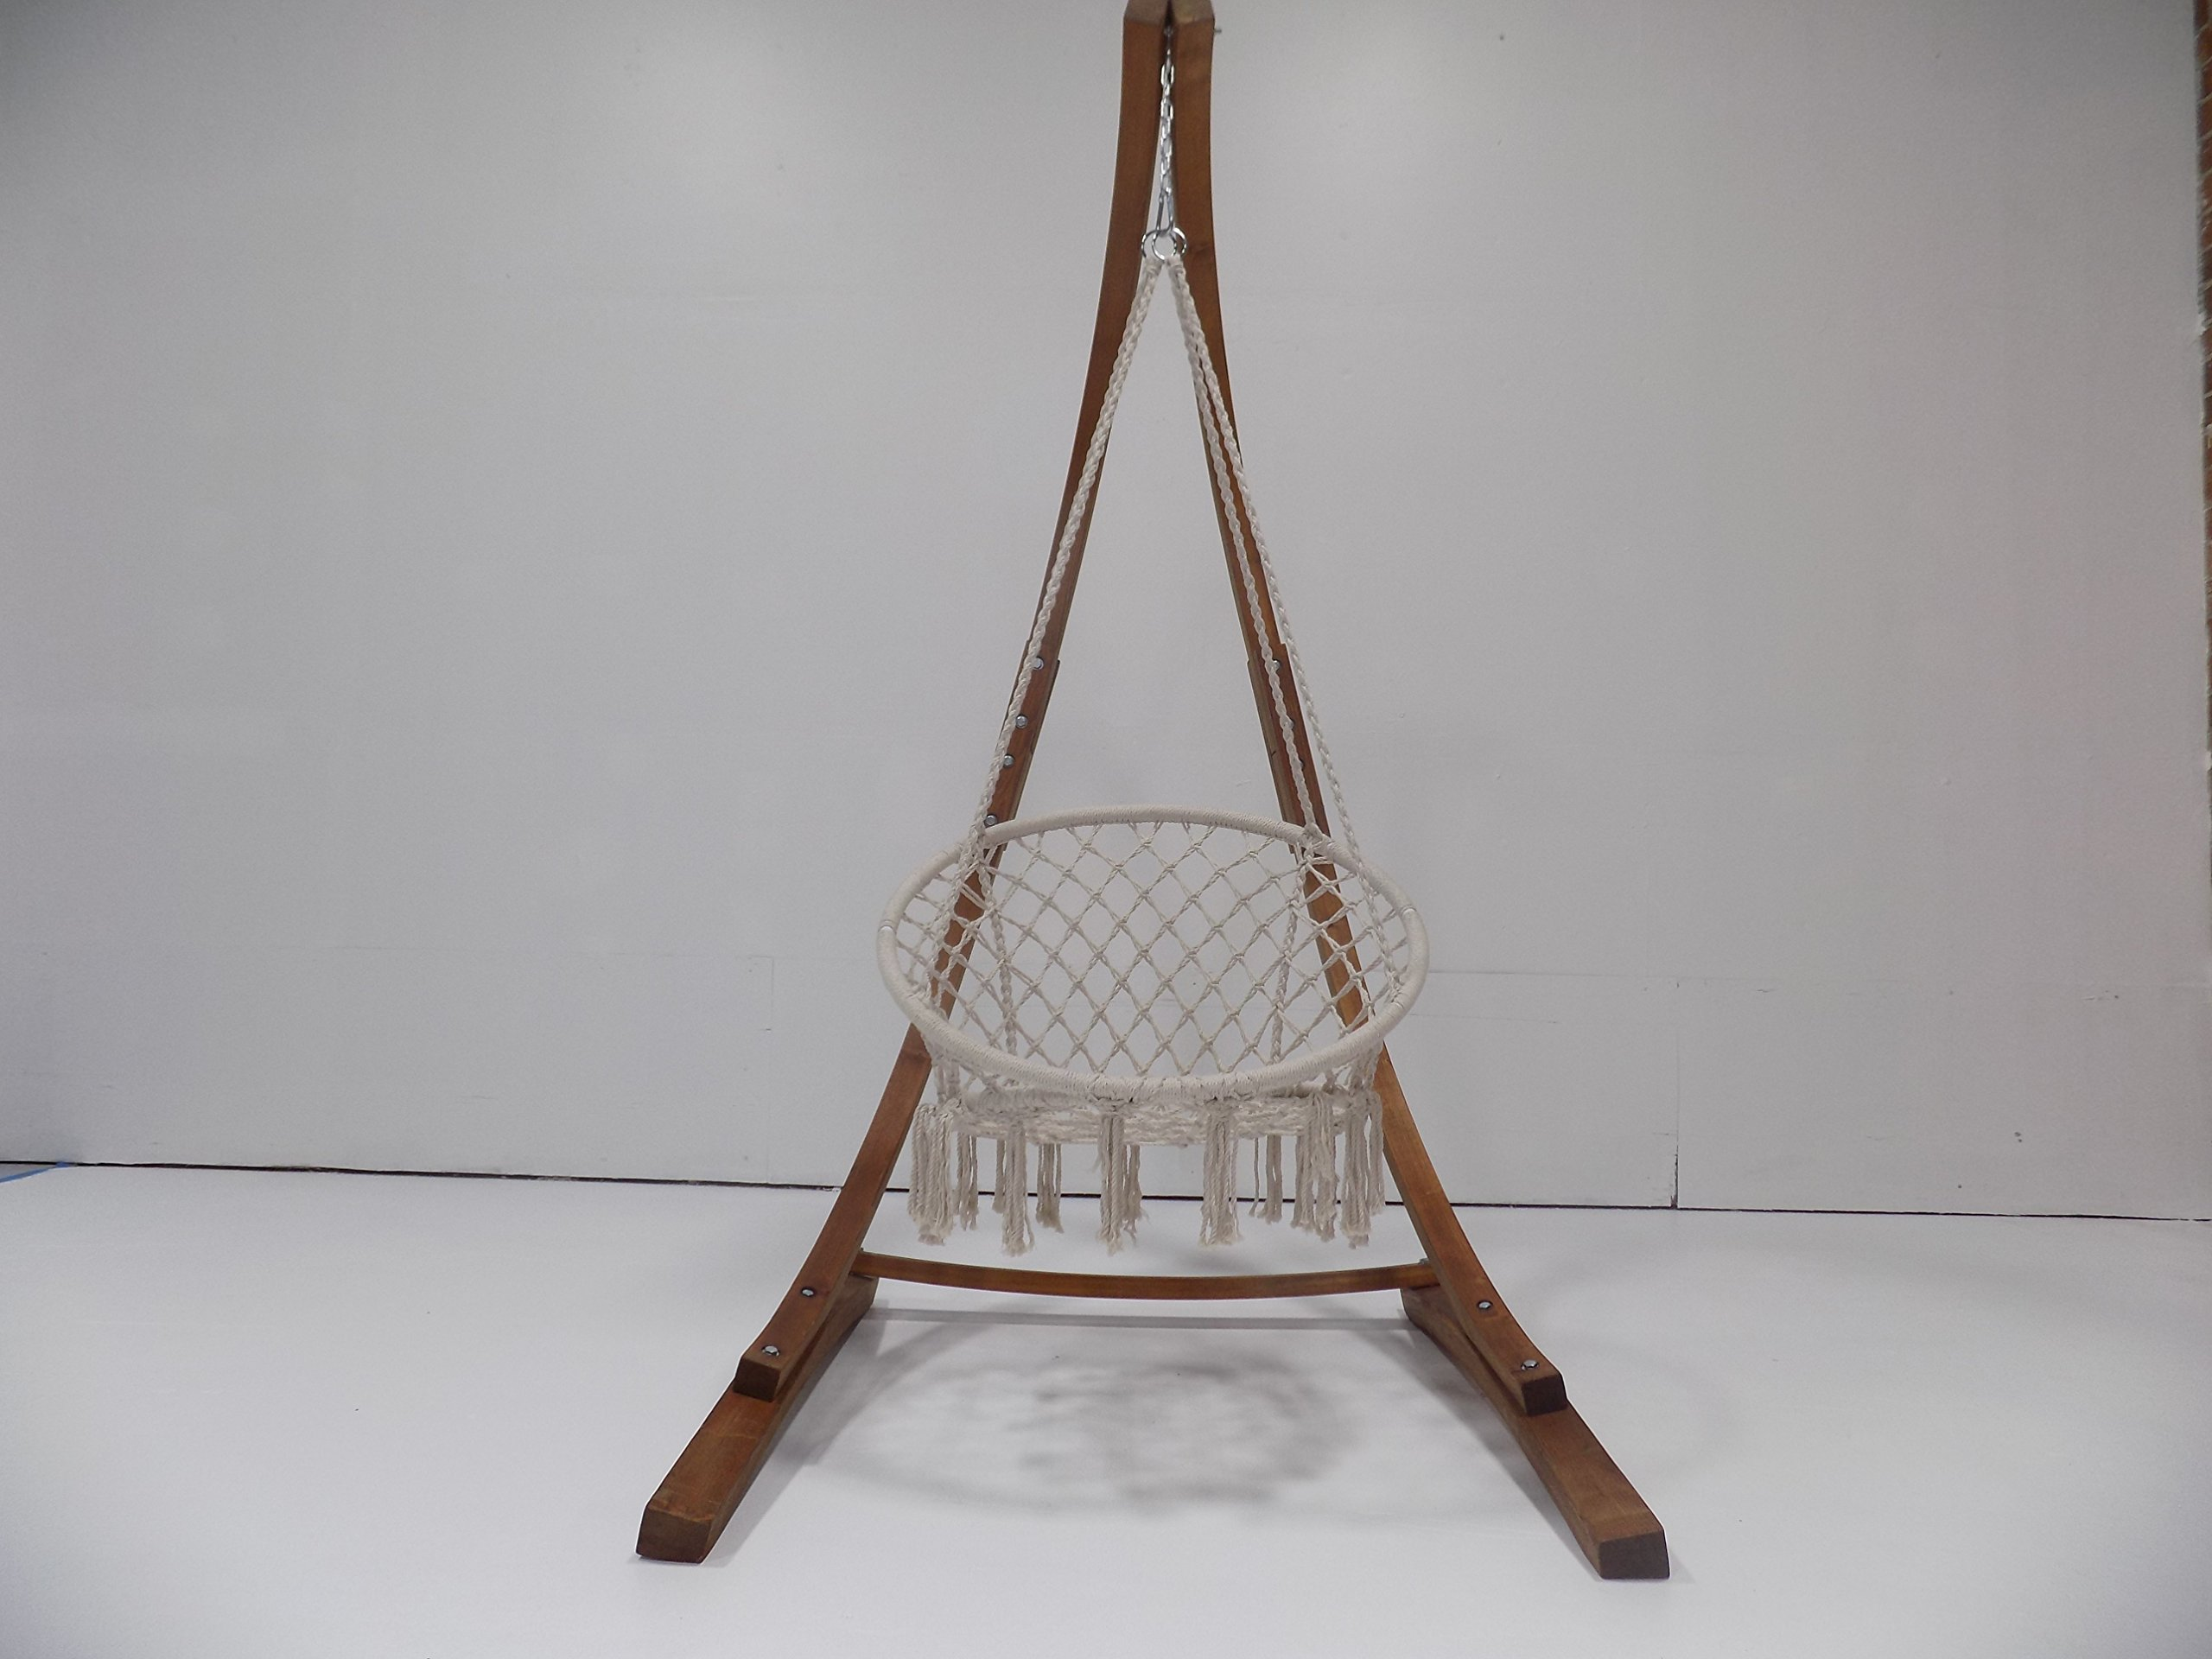 Petra Leisure 7 Ft. Teak Stain Hammock Chair Stand. Perfect for Indoor/Outdoor Home, Patio, Deck, Yard, Garden. 265LB Weight Capacity.(Stand Only) by Petra Leisure (Image #1)